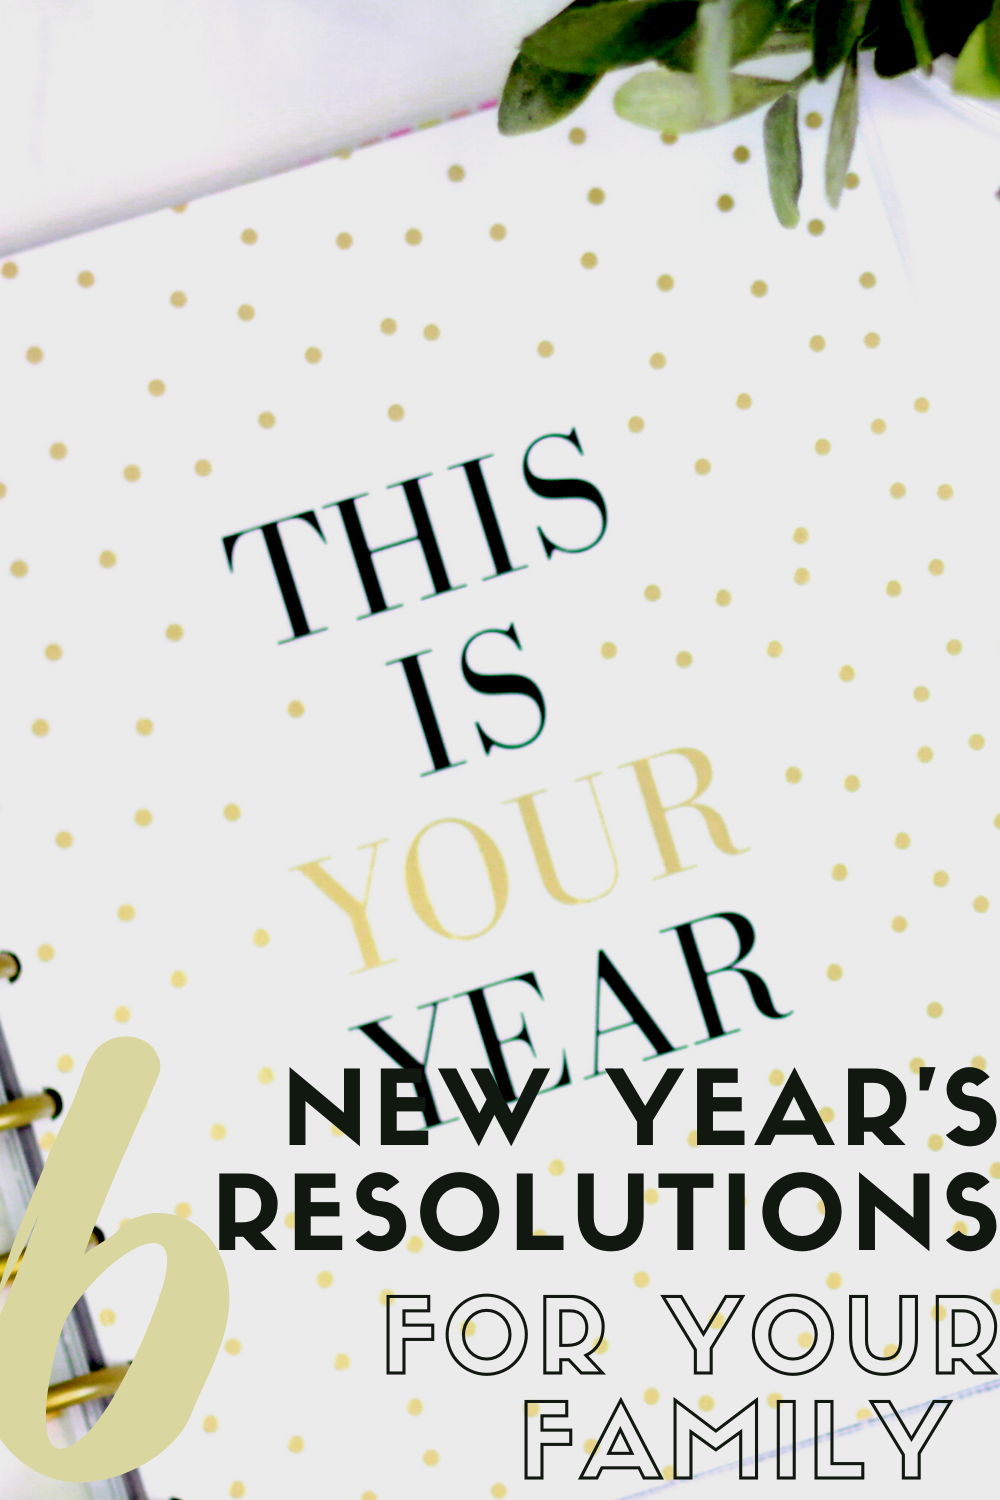 Six New Year's Resolutions for Your Family